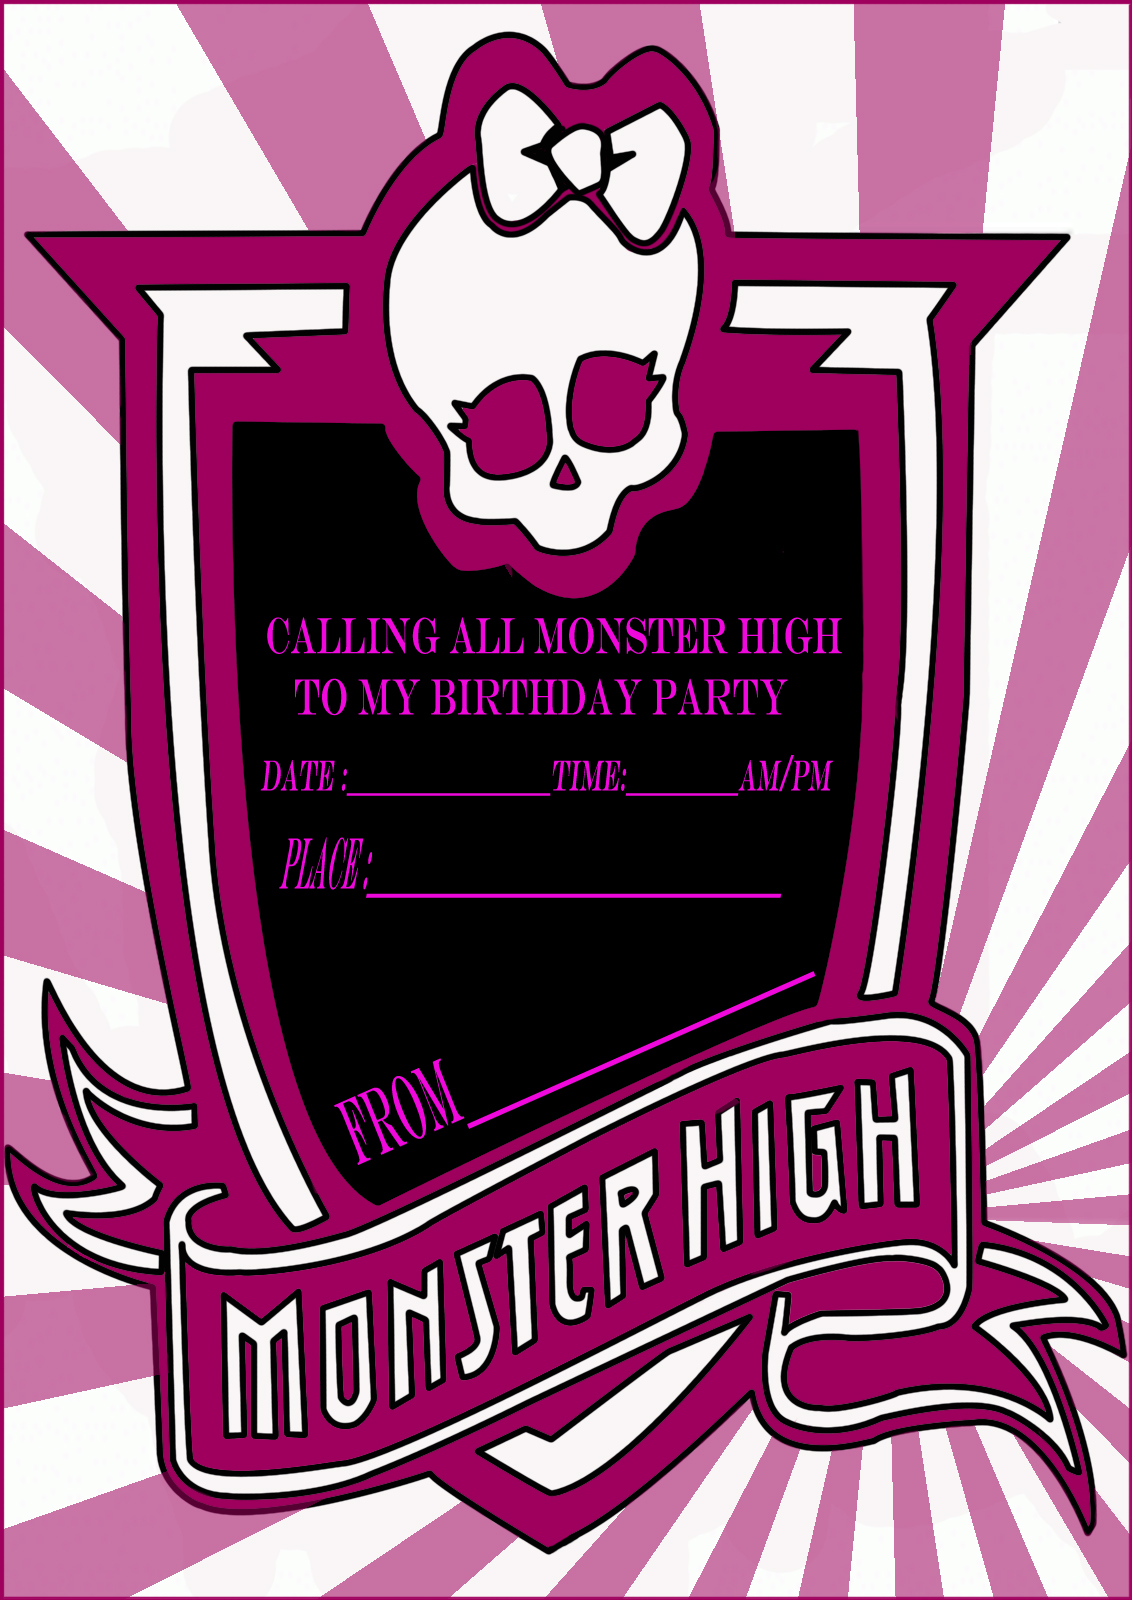 Monster High Free Invitation Template with nice invitations design